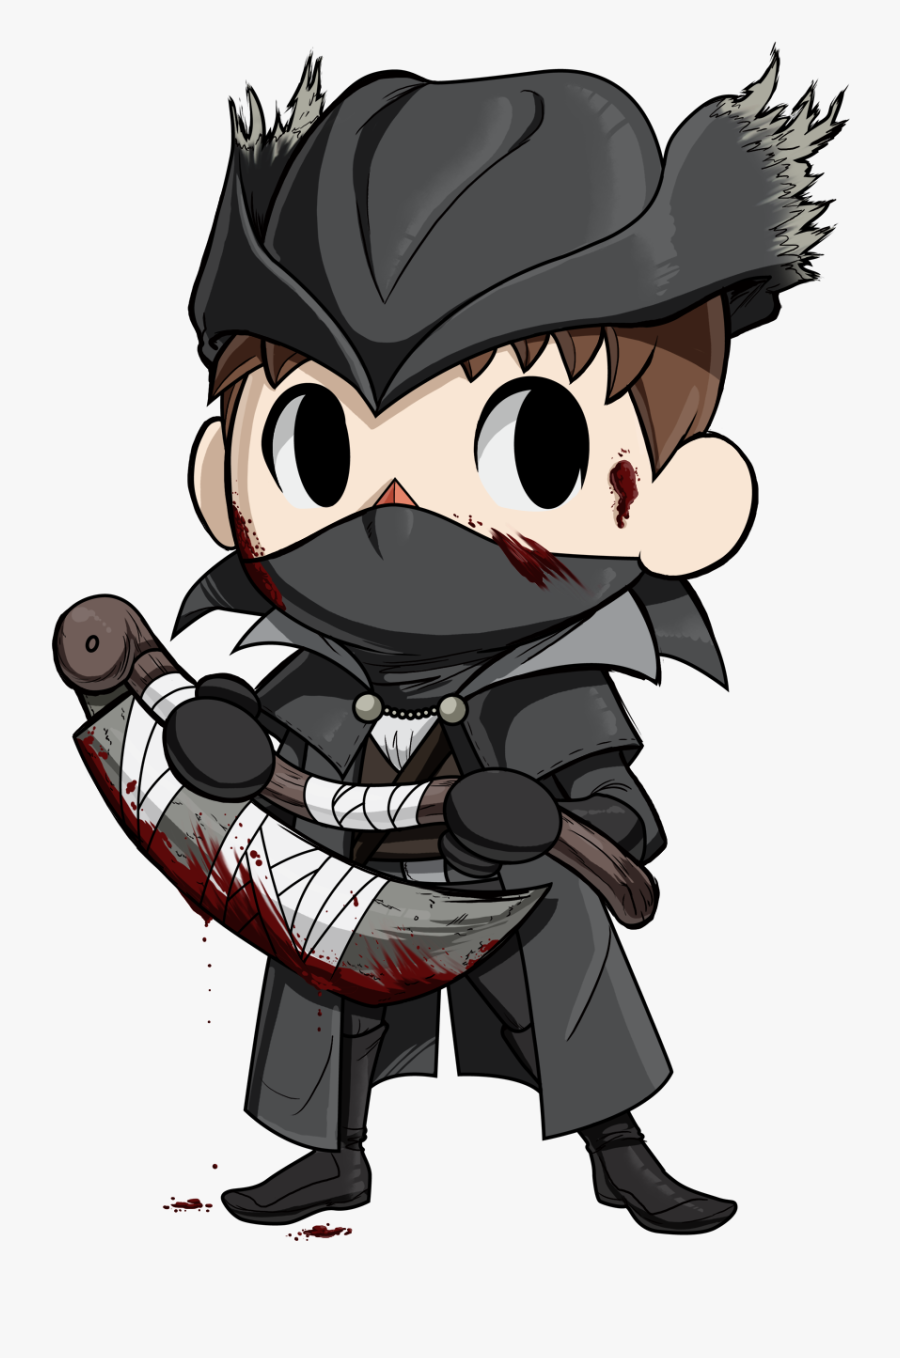 Bloodborne Clipart Leaf - Animal Crossing Villager Fanart, Transparent Clipart